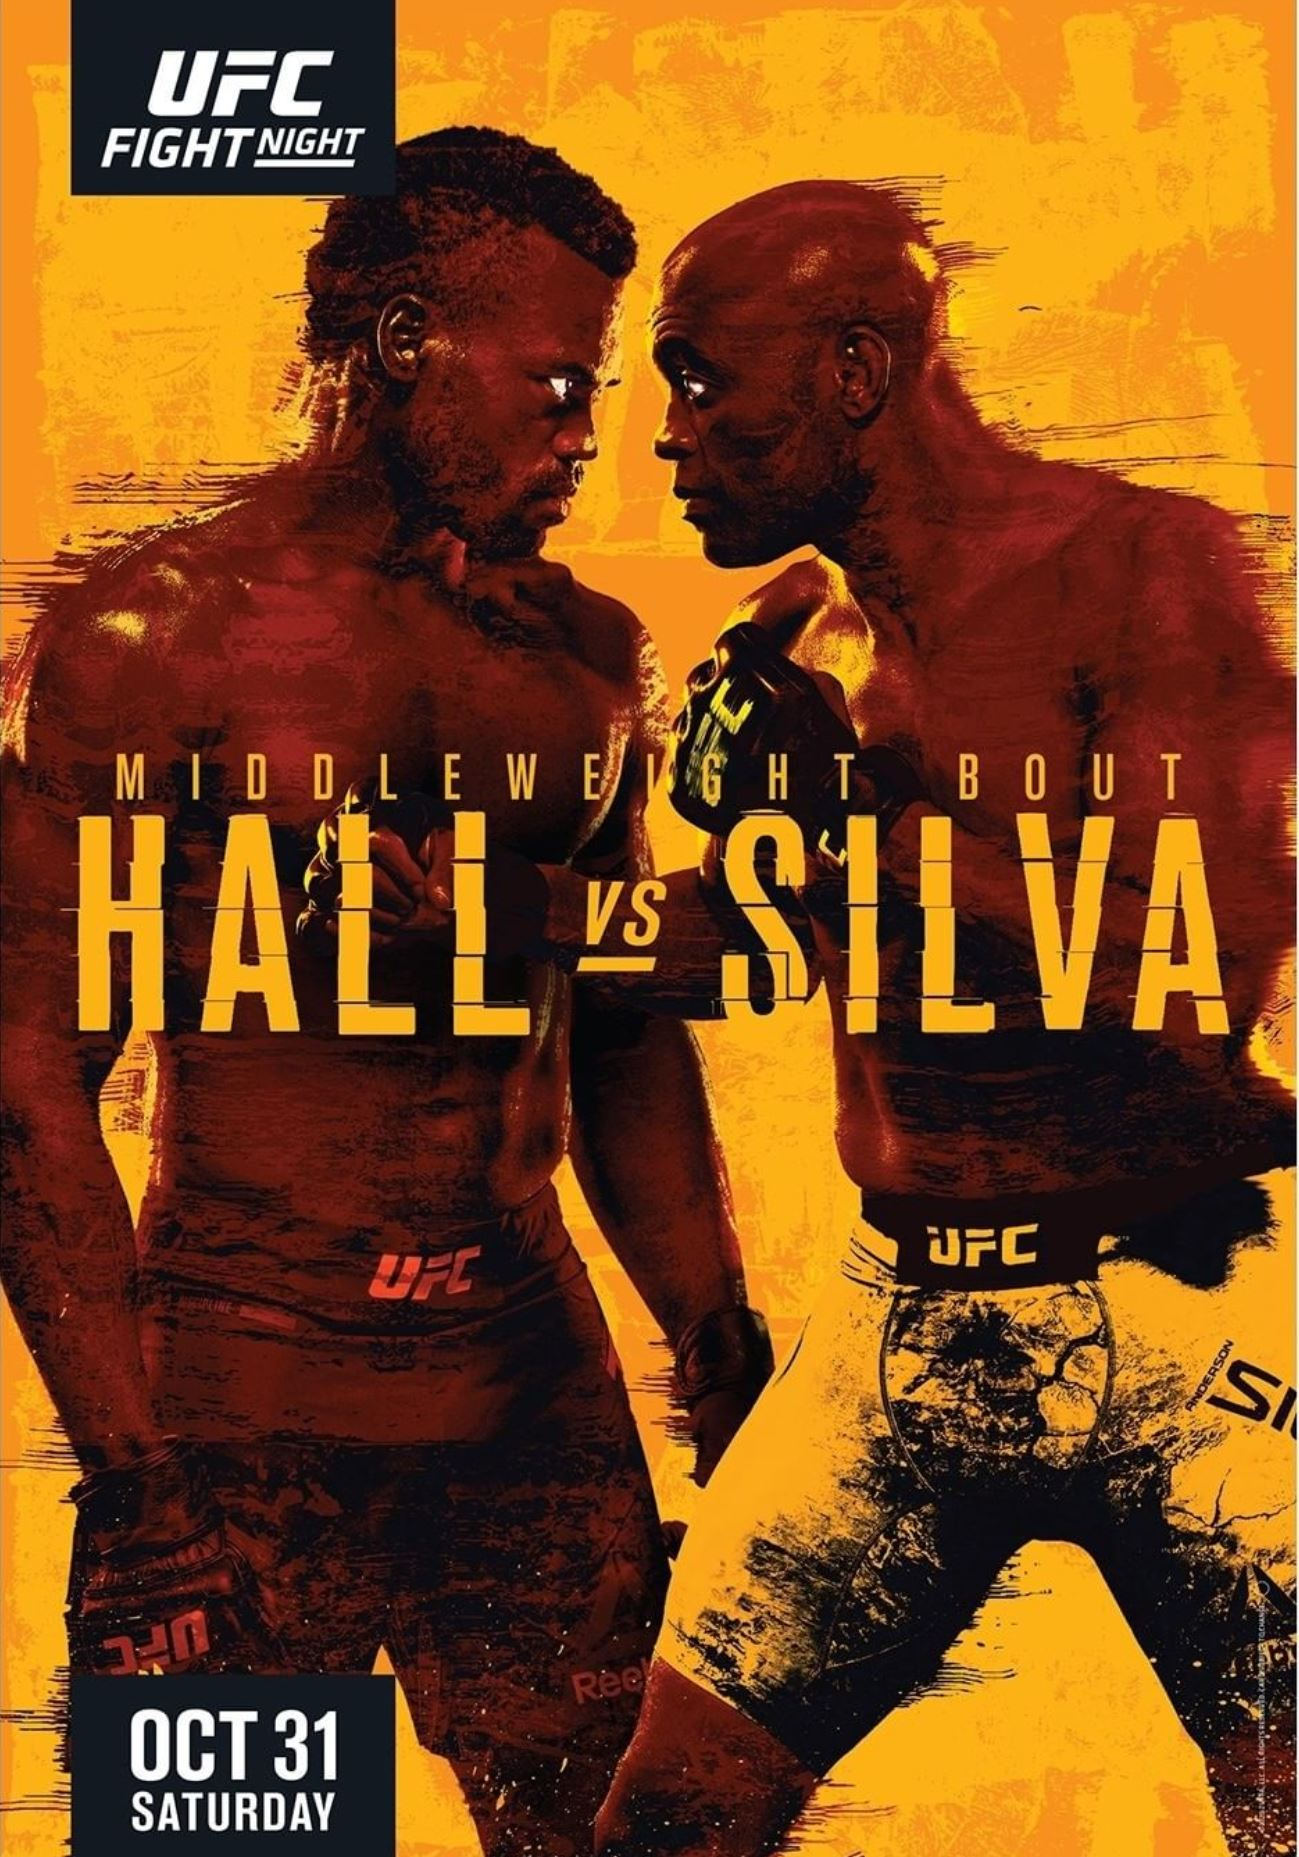 Look Ufc Fight Night 181 Poster For Hall Vs Silva Released